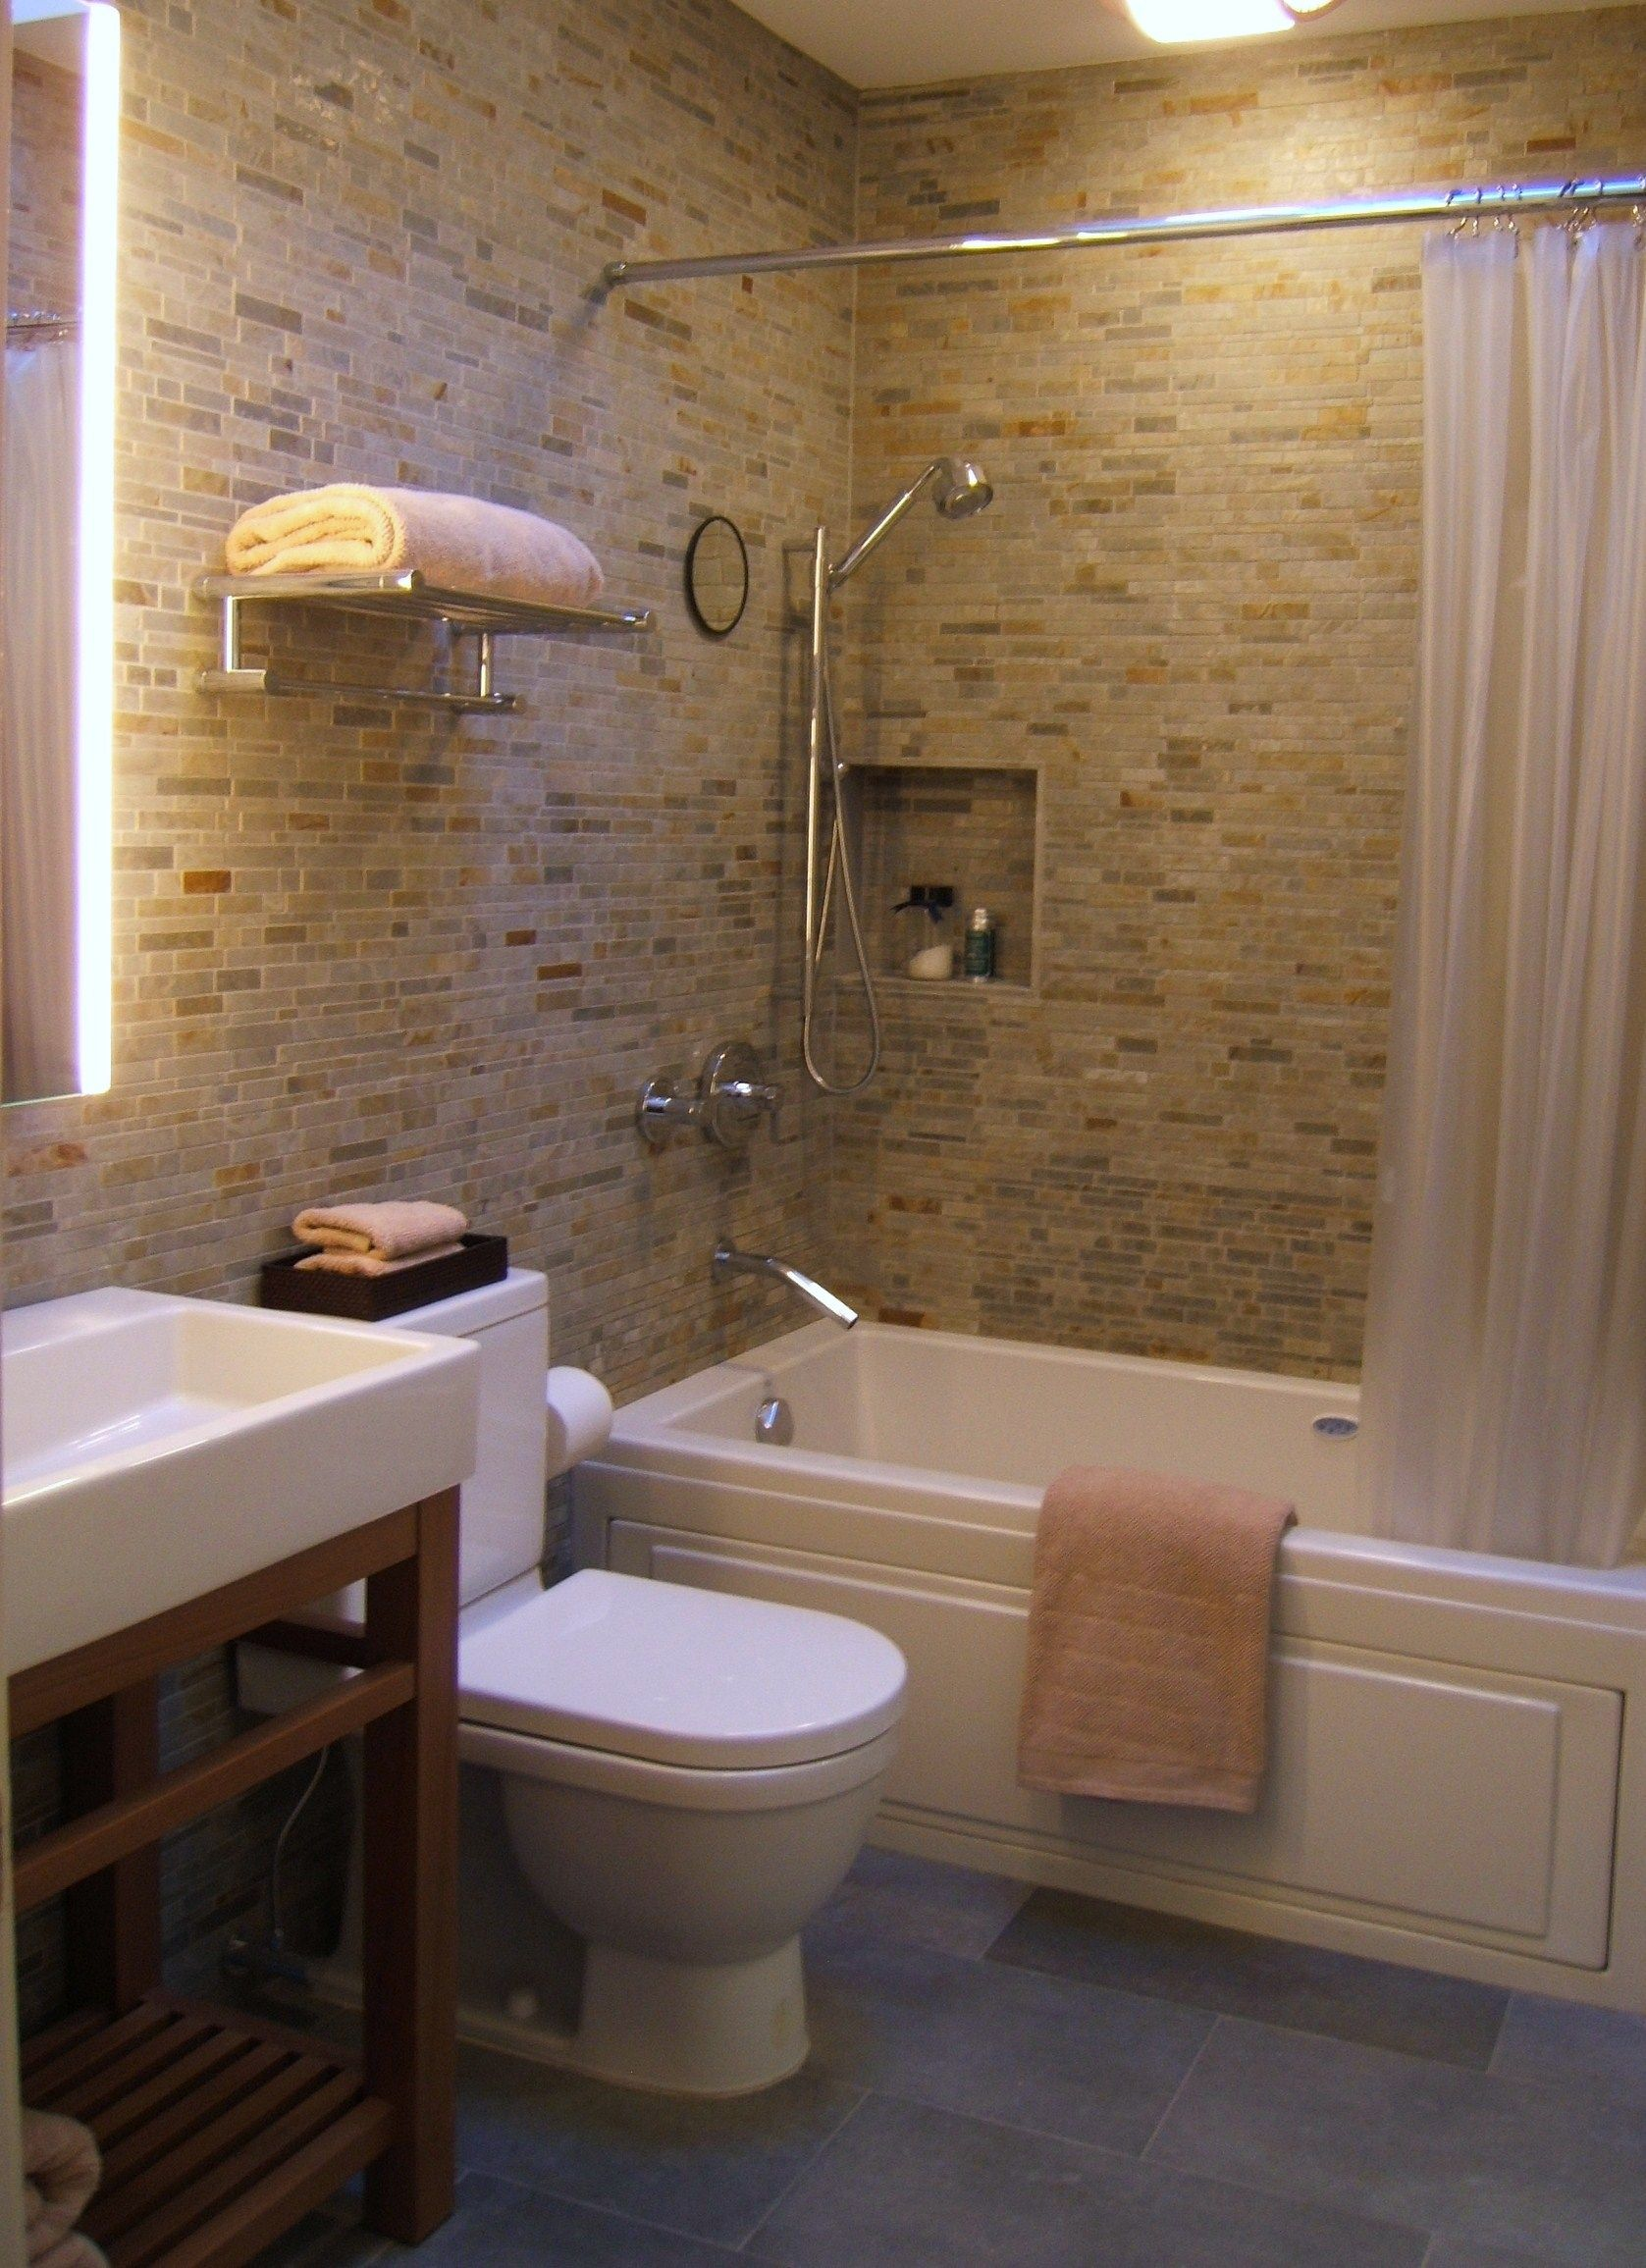 Small bathroom designs south africa small bath for Mini bathroom ideas